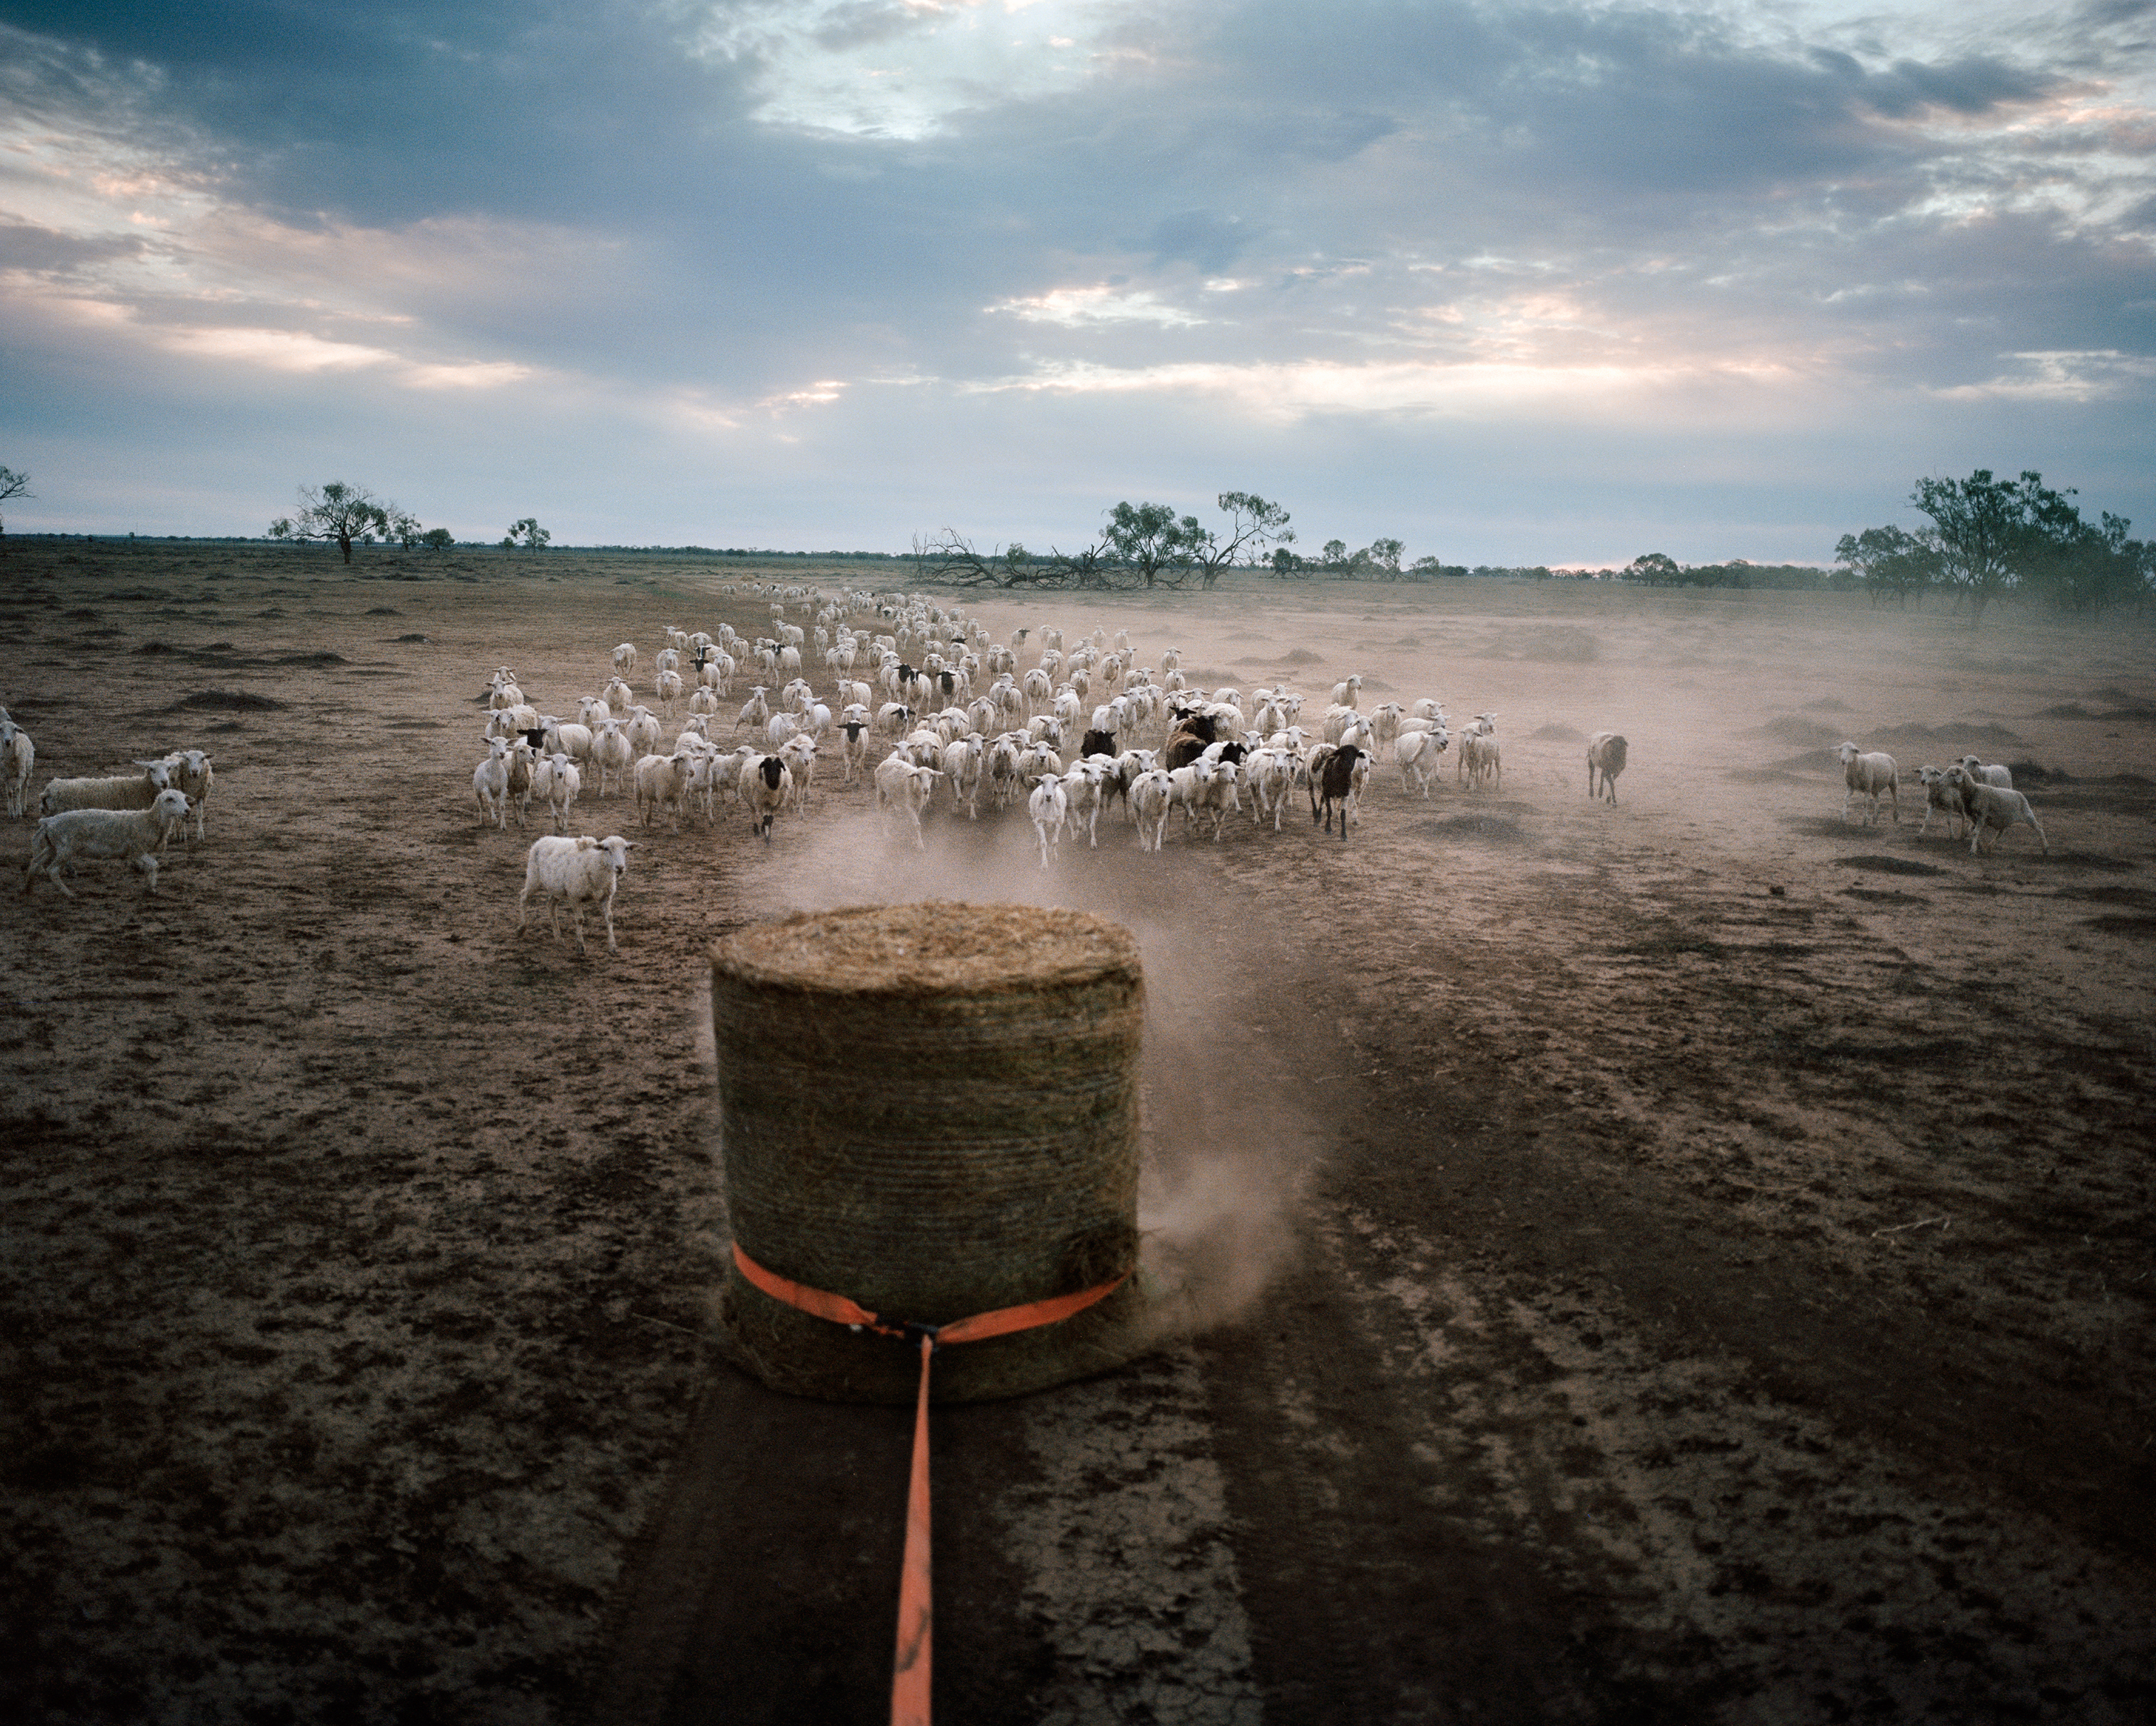 Australia's Farmers Struggle With Its Hottest-Ever Drought | Time